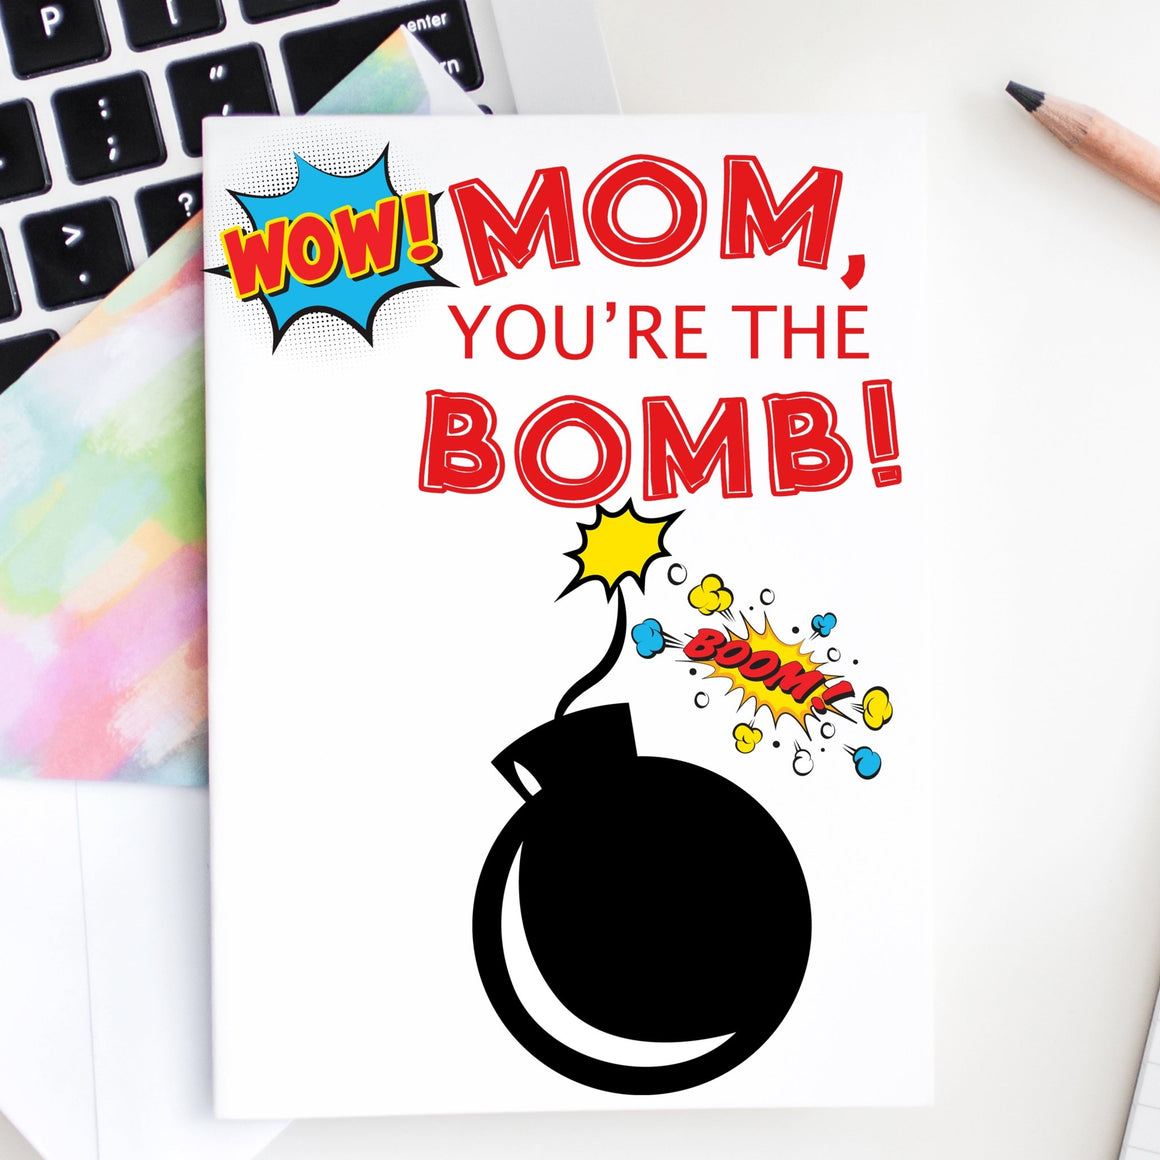 Mom, You're the Bomb - FREE Mother's Day Card Printable - Pretty Collected